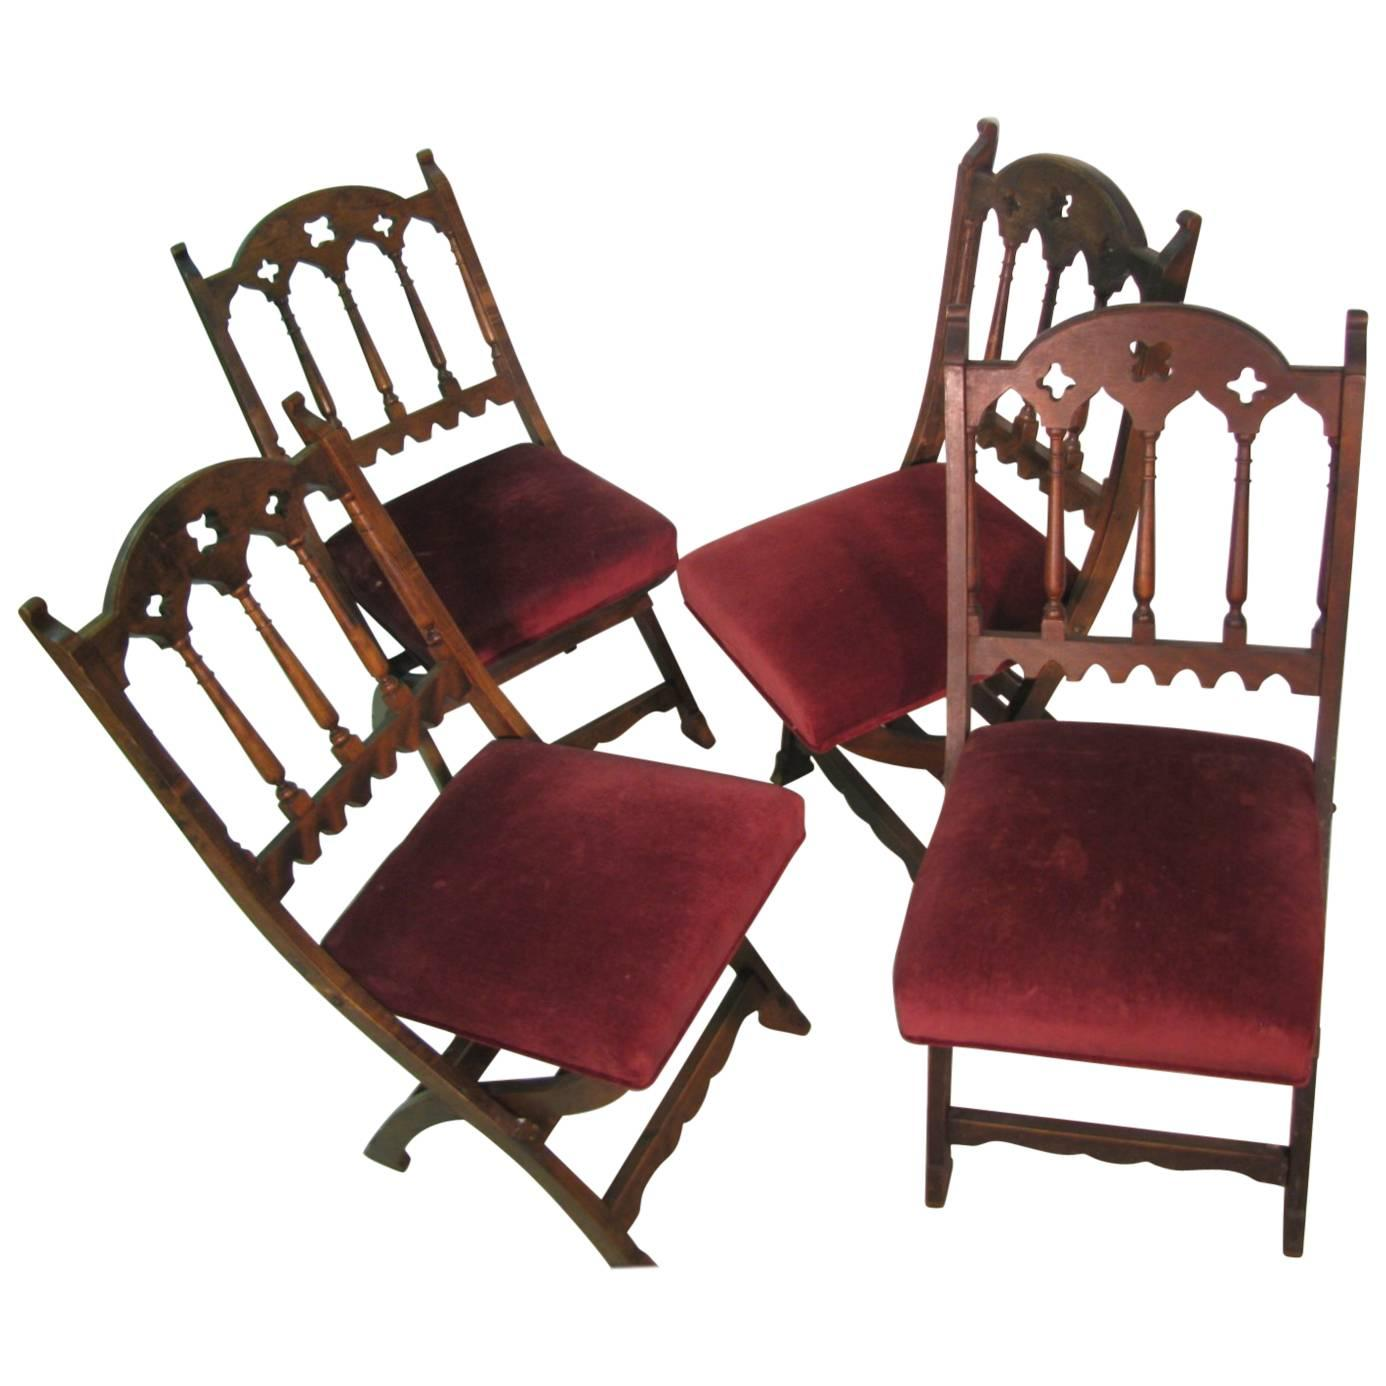 19th Century Set of Four Gothic Style Church Choir Chairs For Sale  sc 1 st  1stDibs & 19th Century Set of Four Gothic Style Church Choir Chairs For Sale ...